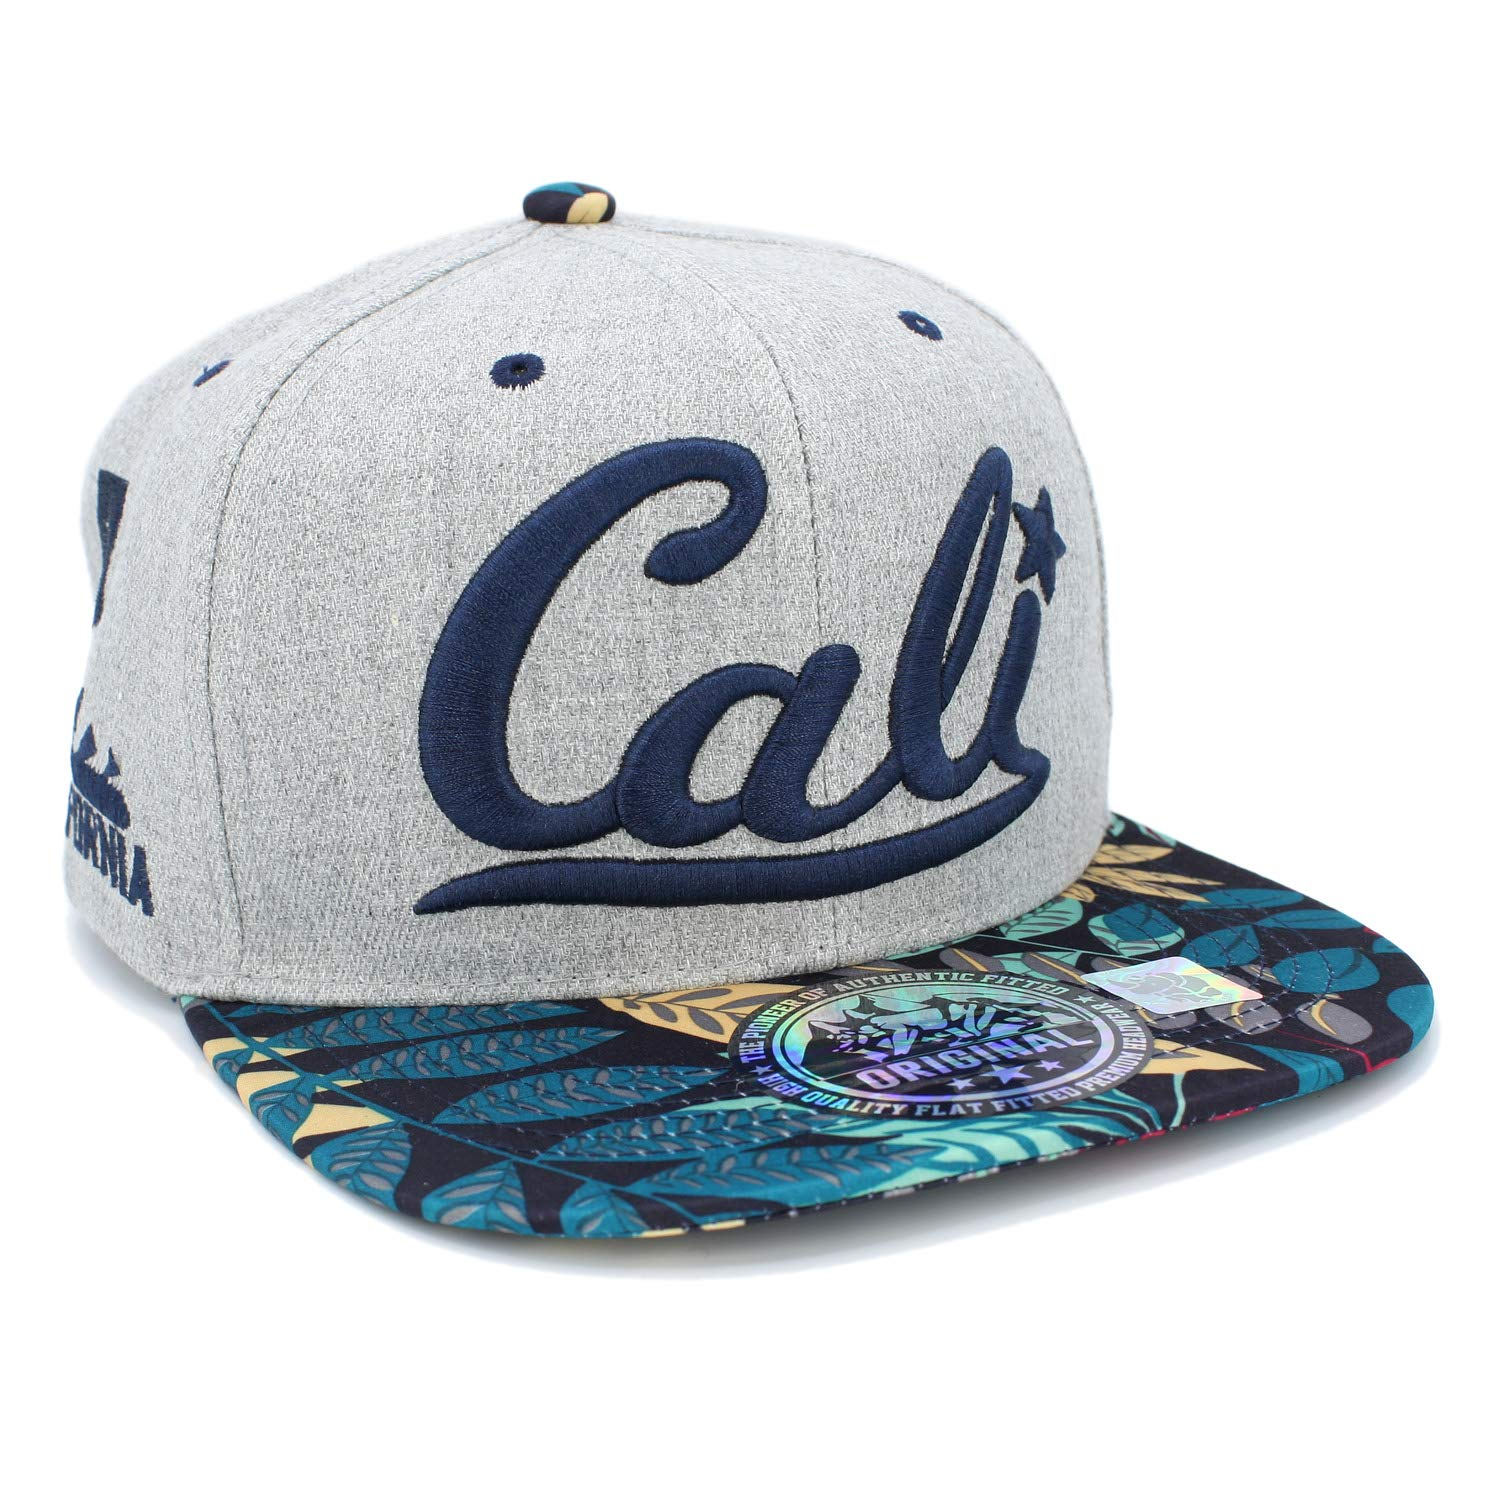 LAFSQ Embroidered Cali with California Map Snapback Cap